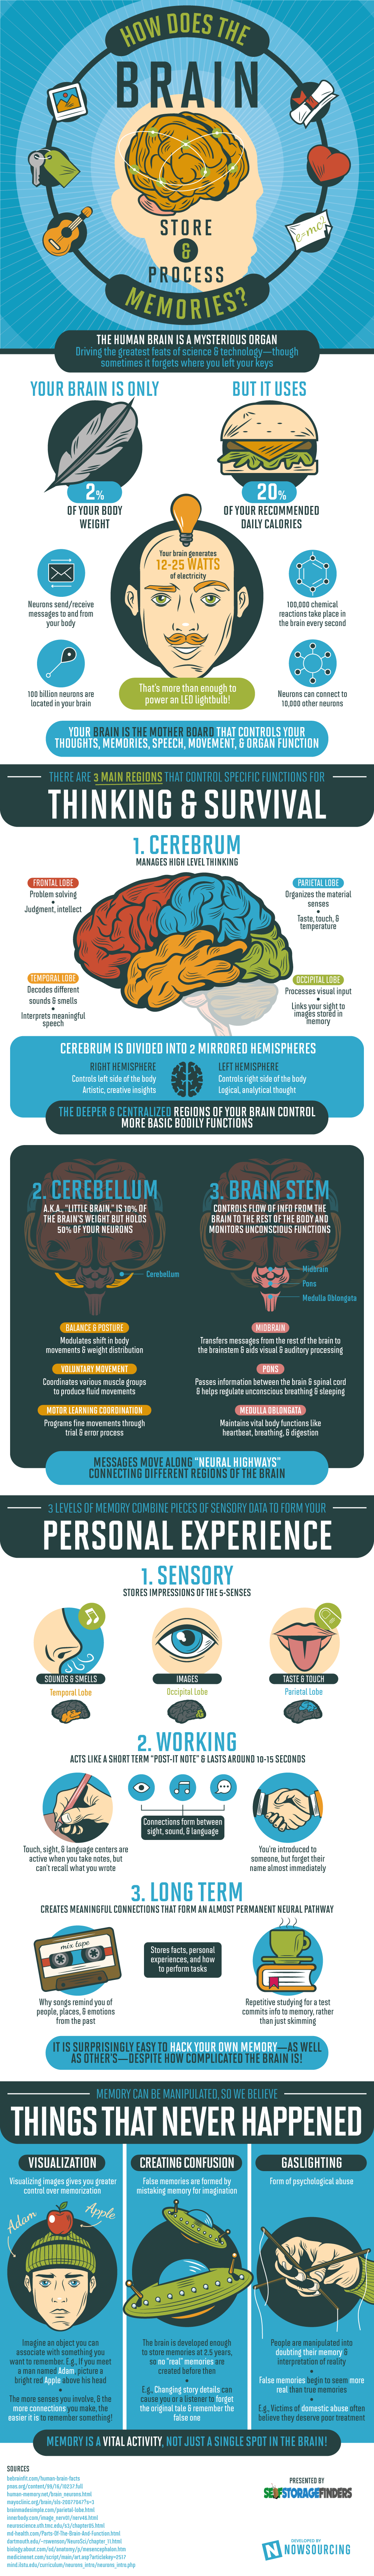 How Does The Brain Store And Process Memories?